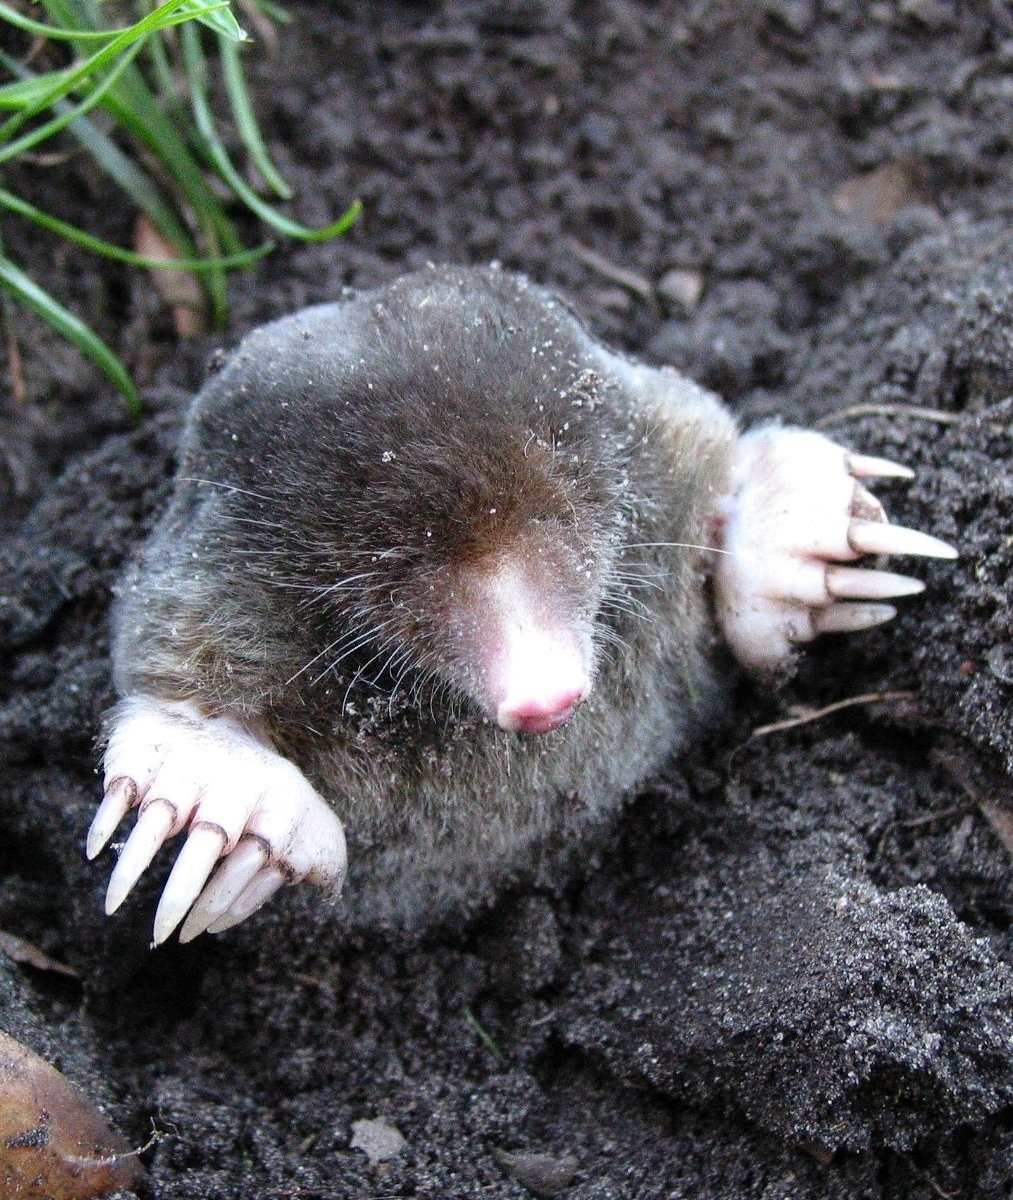 How A Mole Is Able To Live Underground About Wild Animals